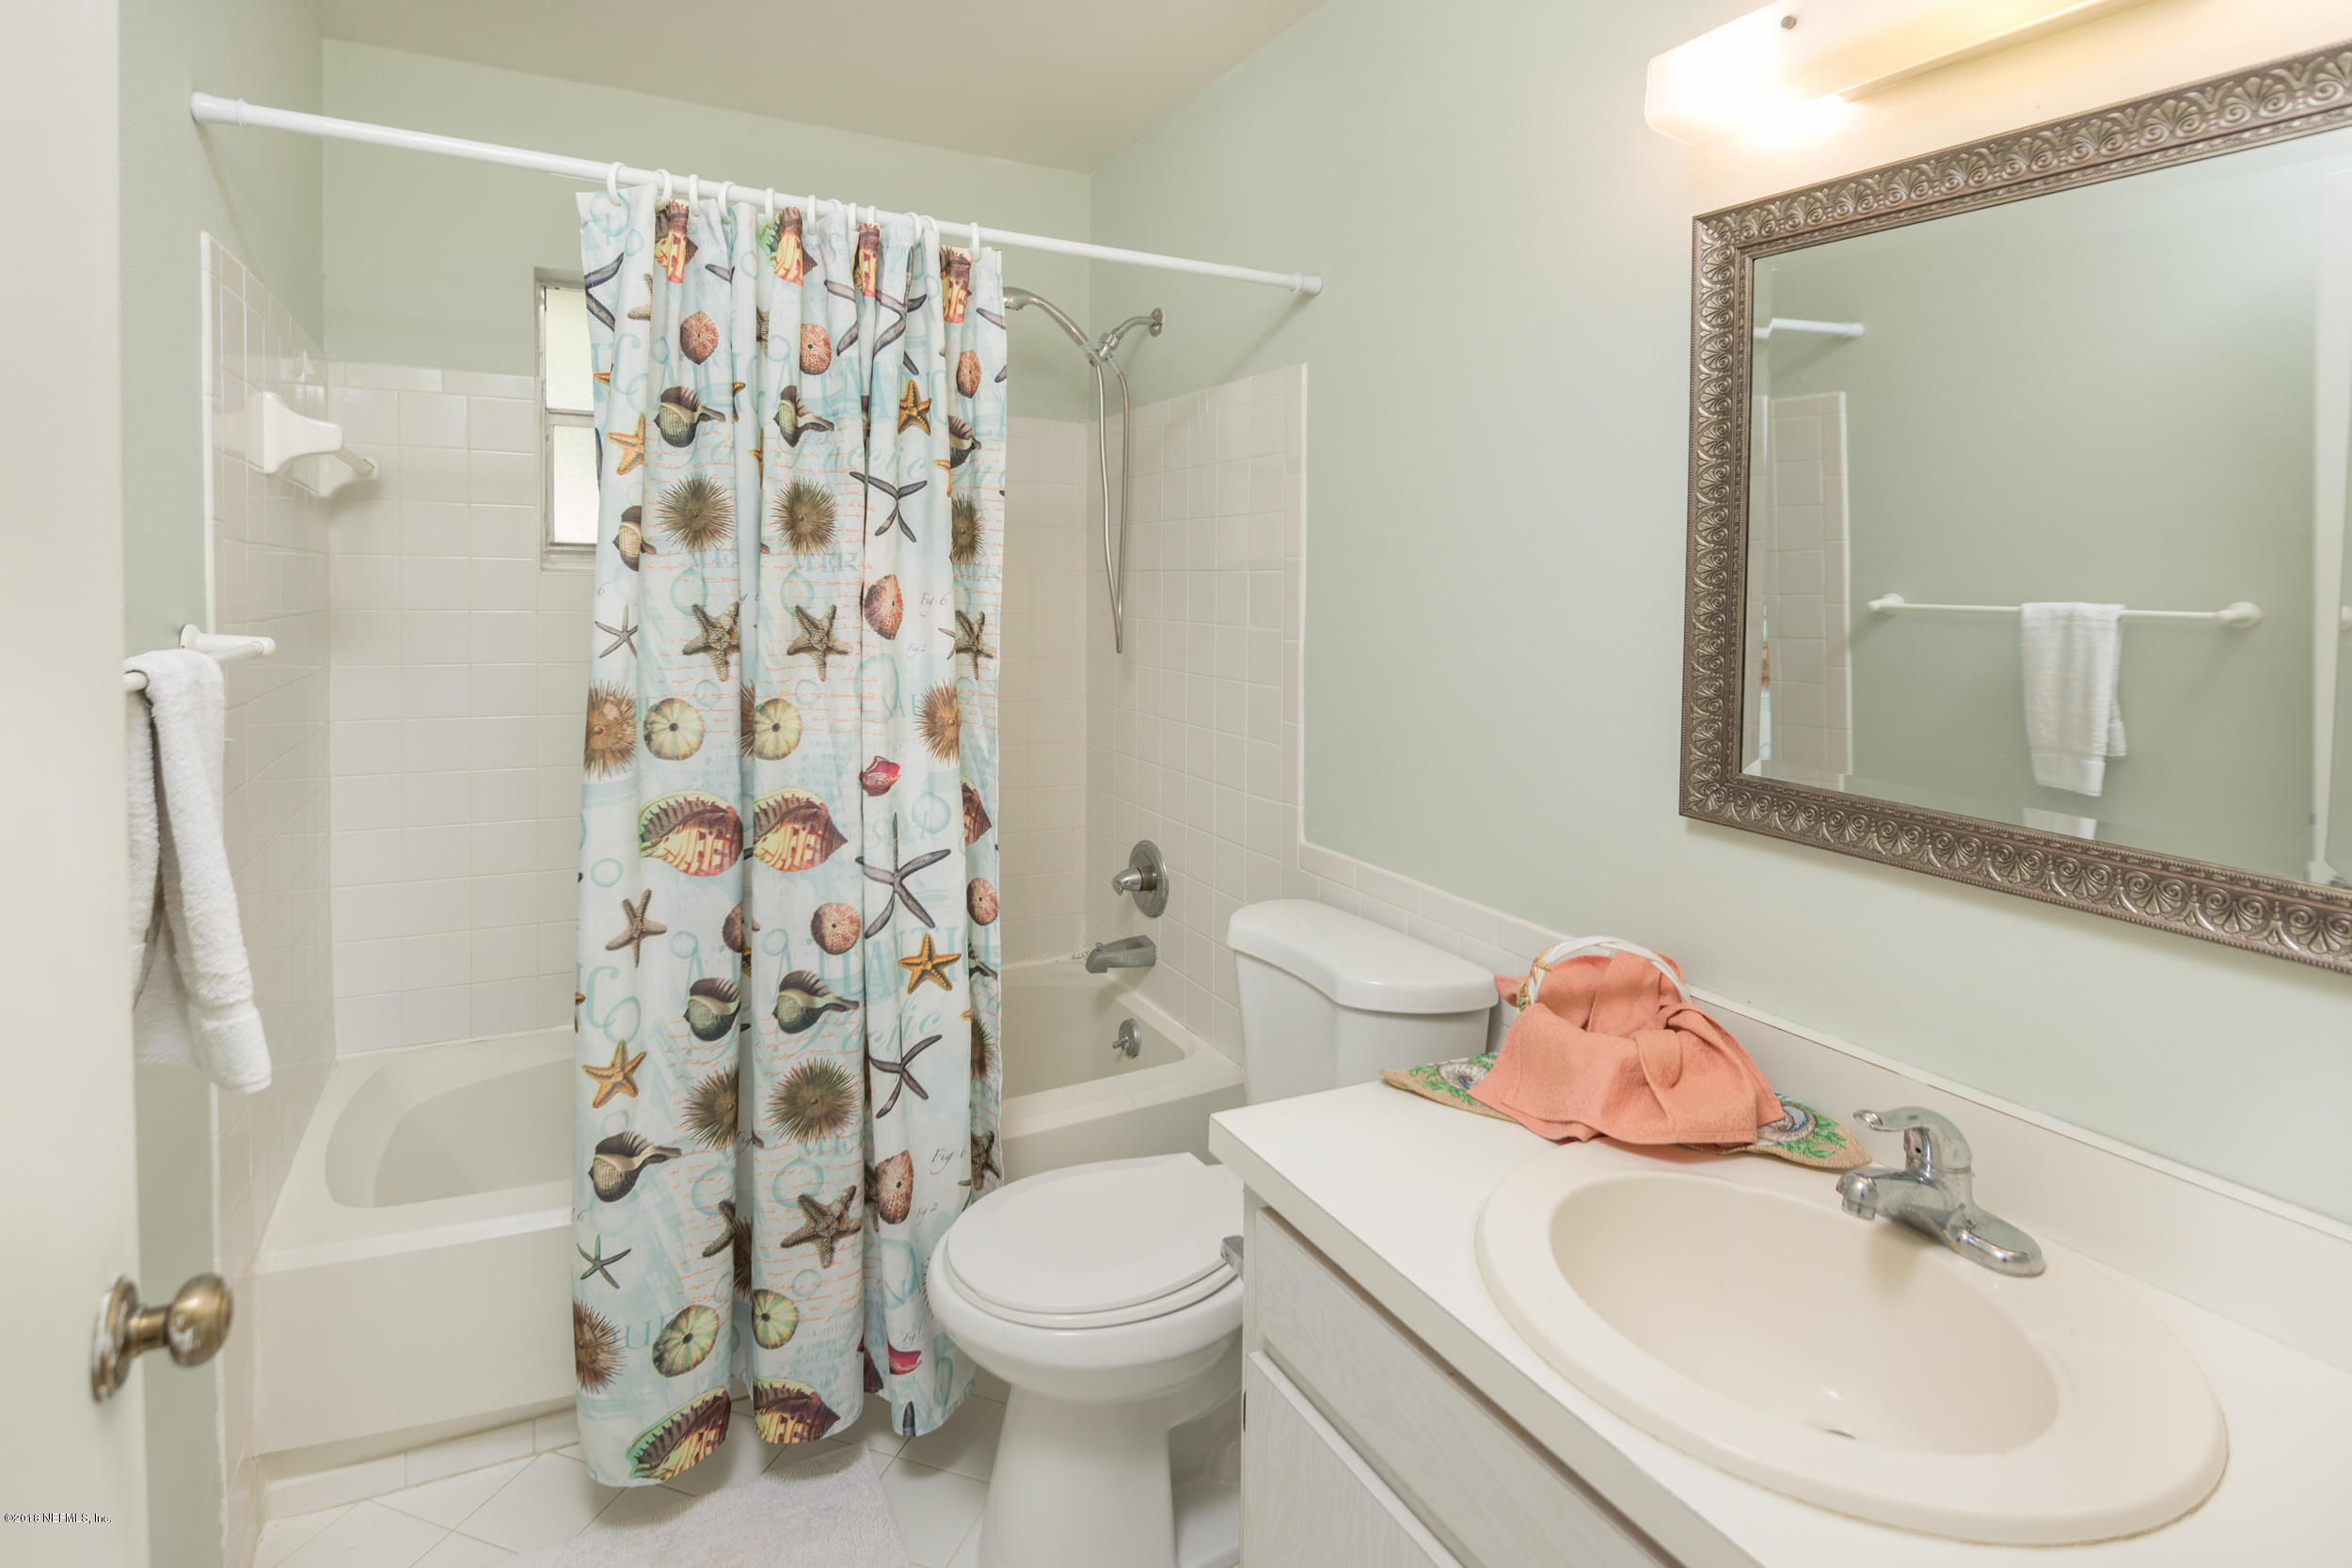 410 GRACIELA, ST AUGUSTINE, FLORIDA 32086, 2 Bedrooms Bedrooms, ,2 BathroomsBathrooms,Residential - single family,For sale,GRACIELA,965413